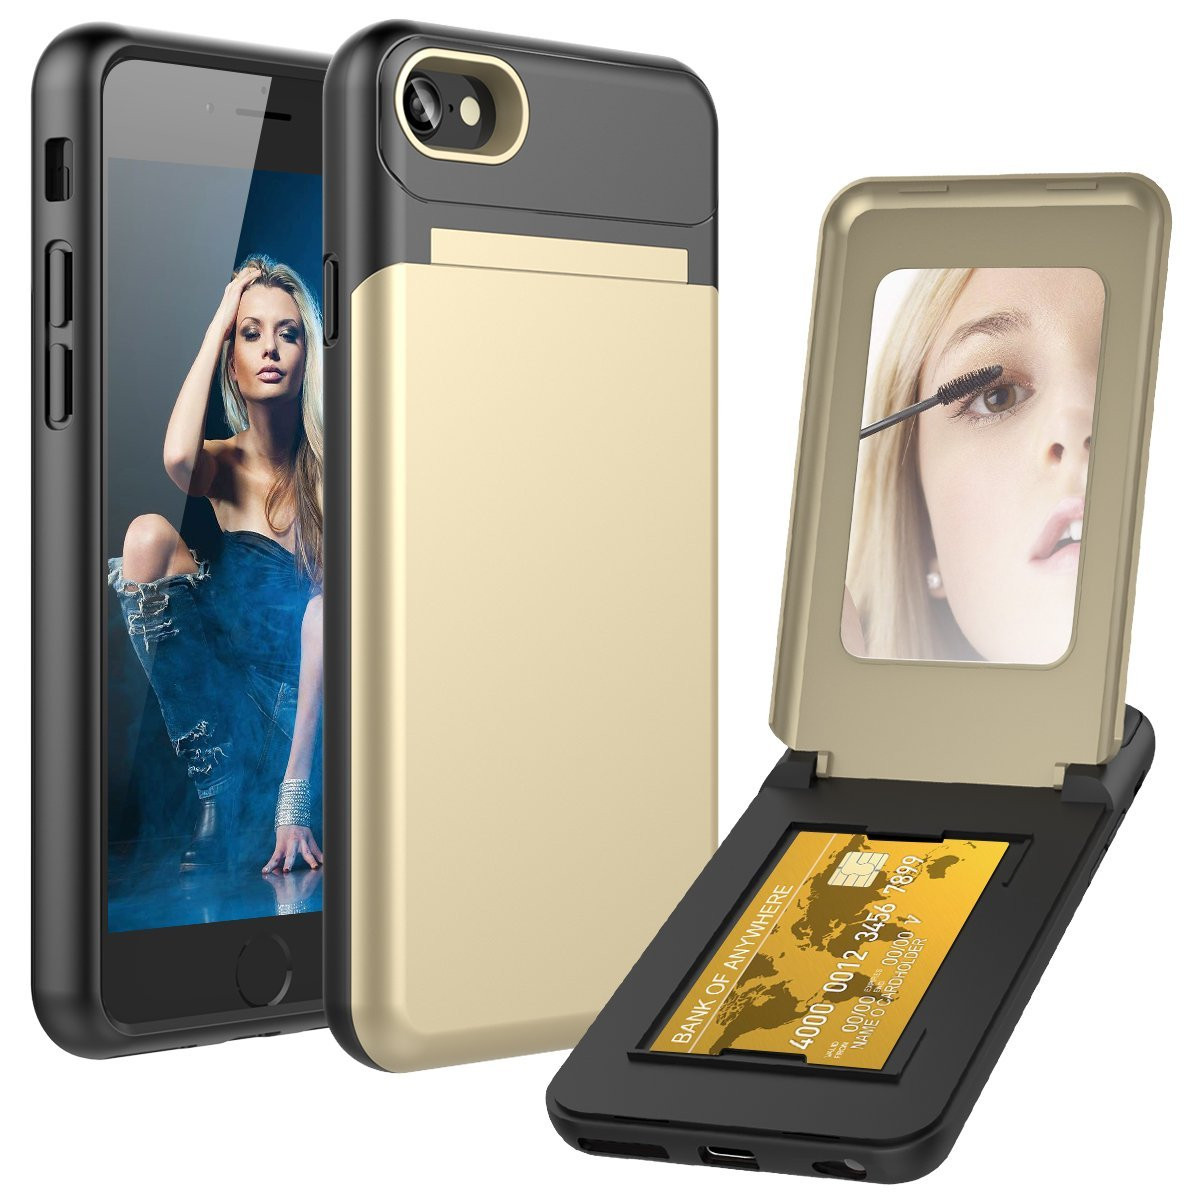 Apple iPhone 6s Plus -  Hard Phone Case with Hidden Mirror and Card Holder Compartment, Gold/Black